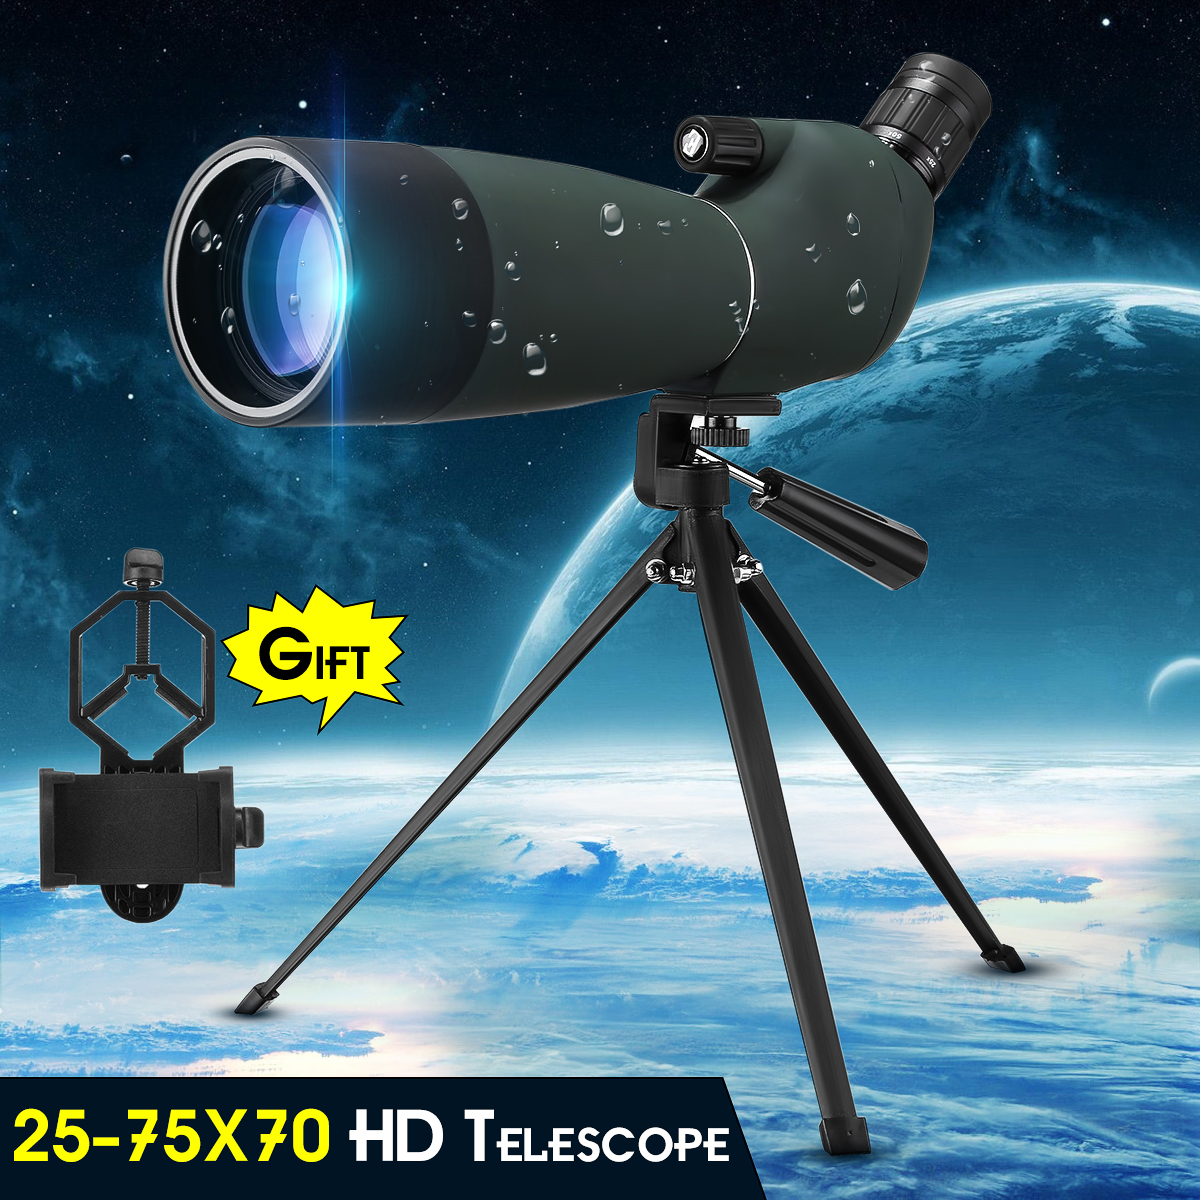 Day/Night Vision 25-75X70 Zoom HD Monocular Spotting Scope Waterproof BAK4 Astronomical Telescope with Tripod & Phone Adapter